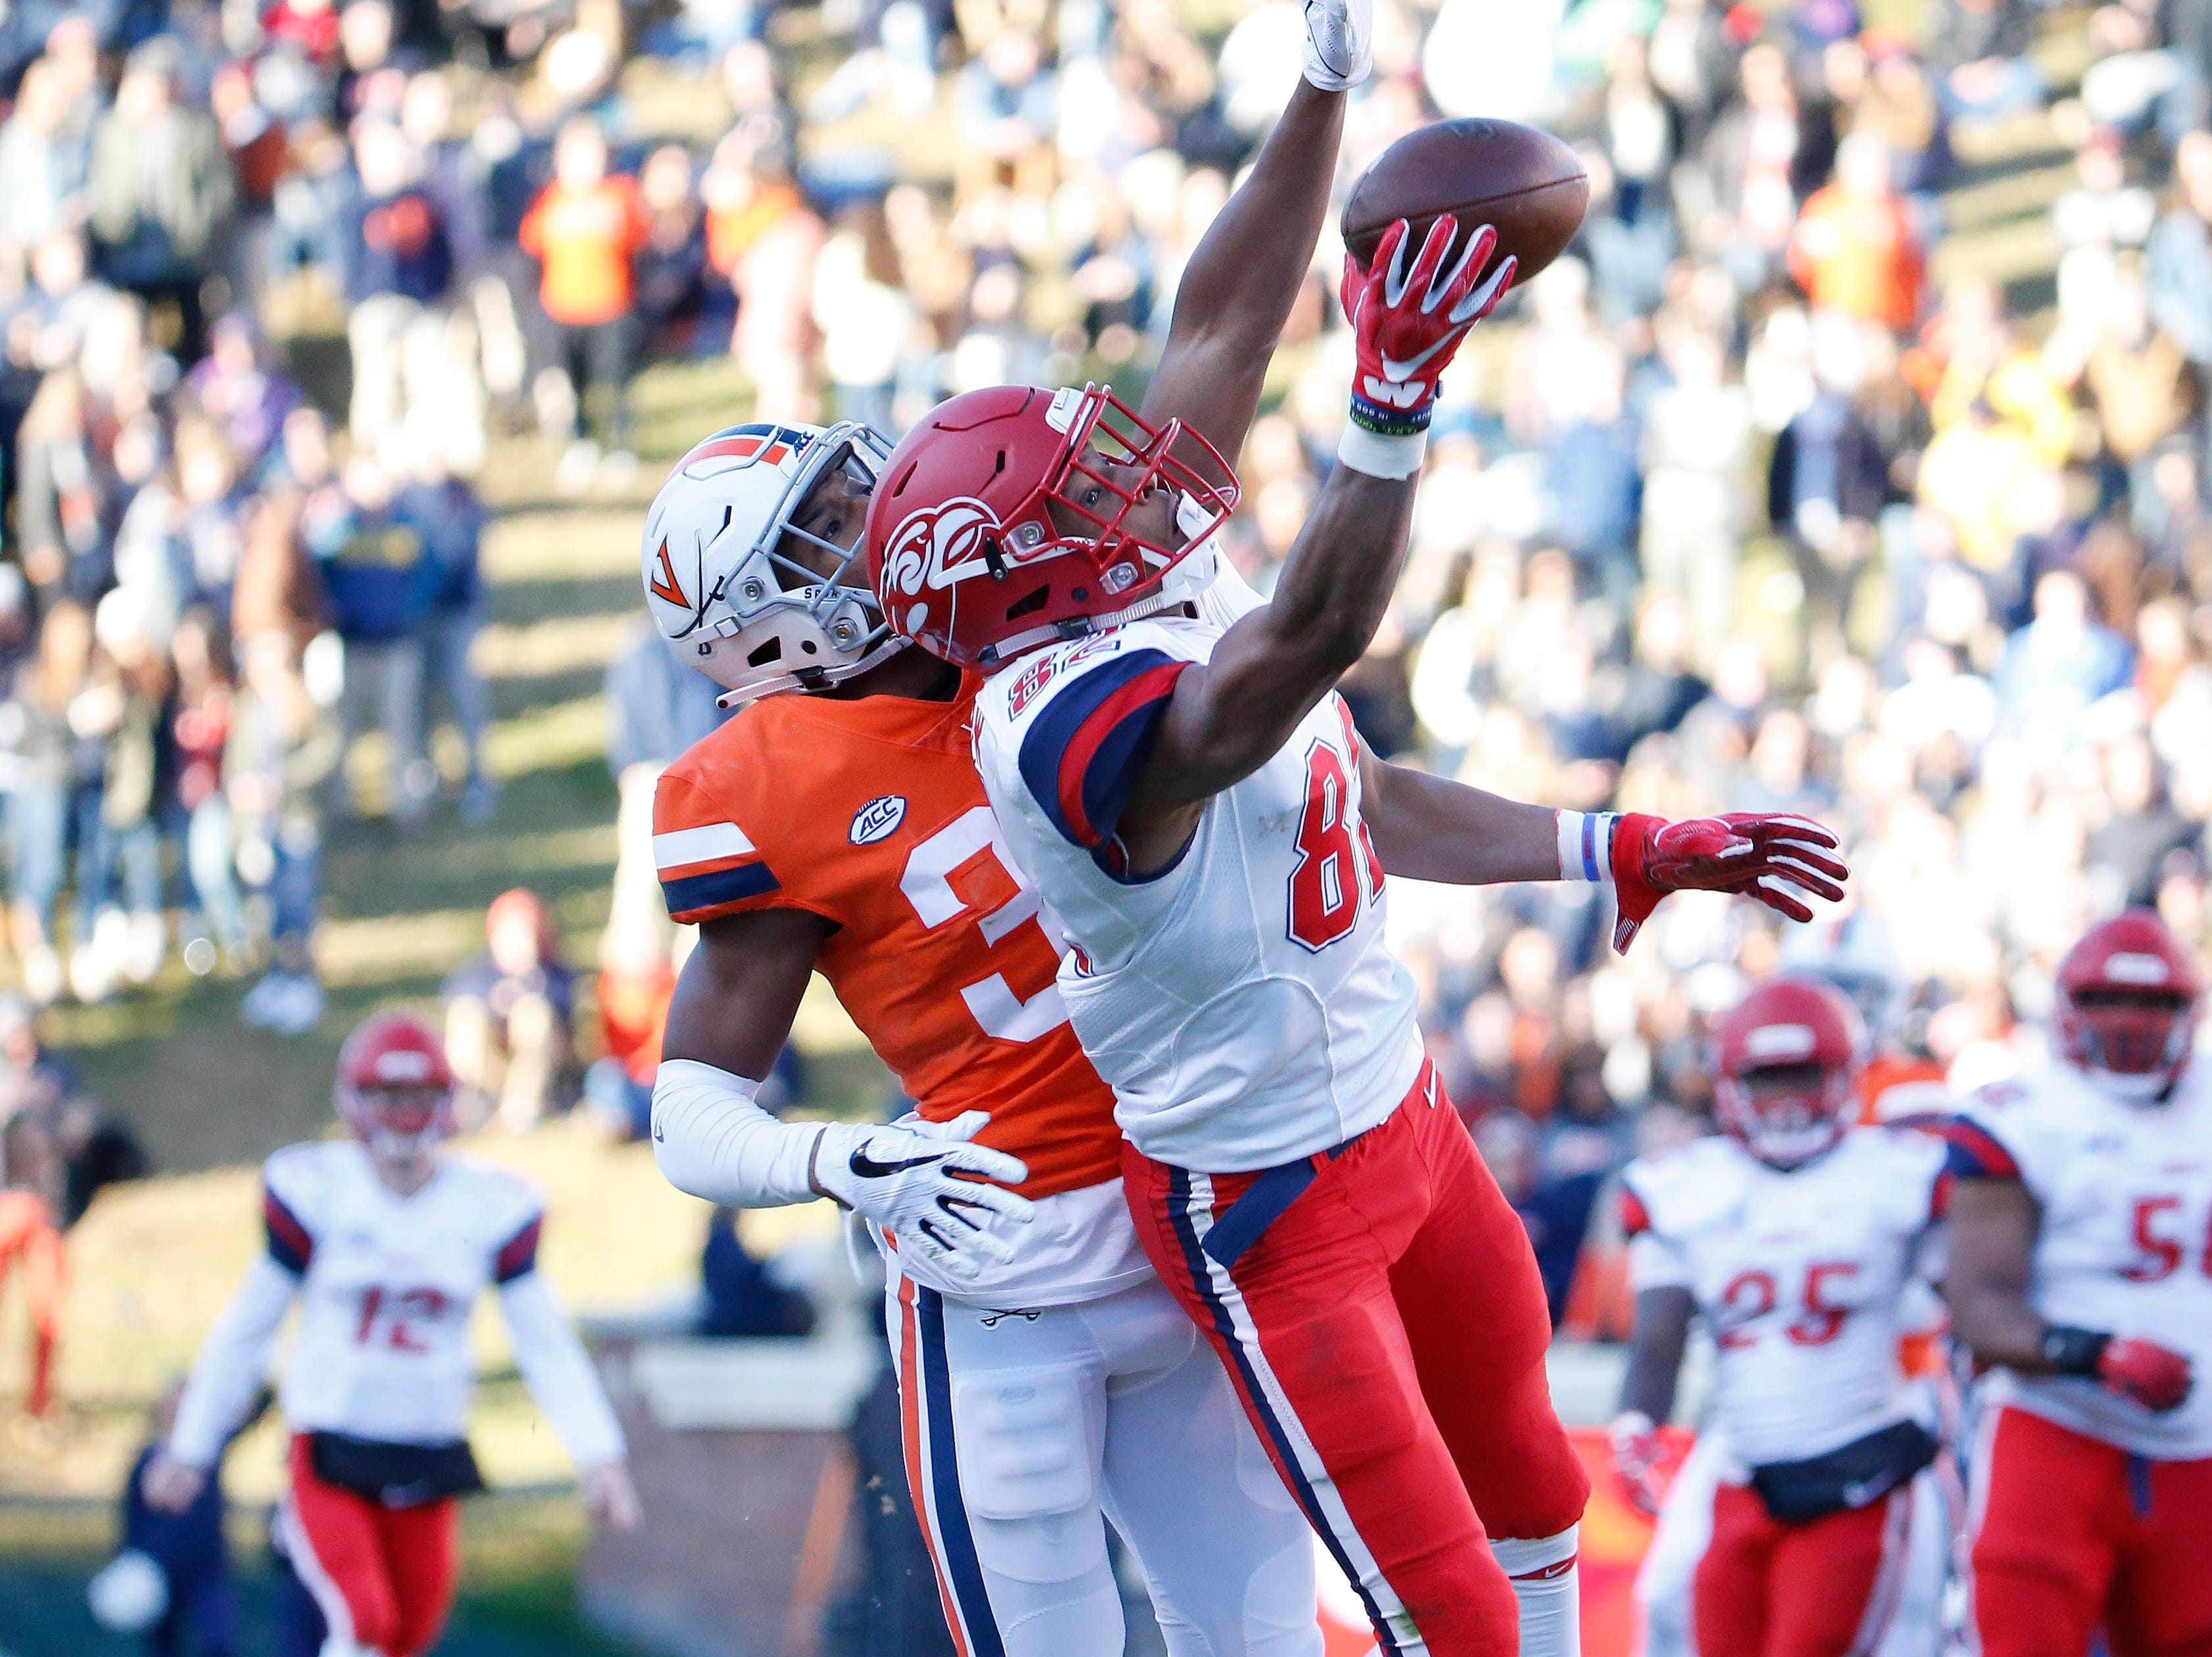 Liberty Flames wide receiver B.J. Farrow (82) catches a pass in front of Virginia Cavaliers cornerback Bryce Hall (34) during the first half at Scott Stadium.